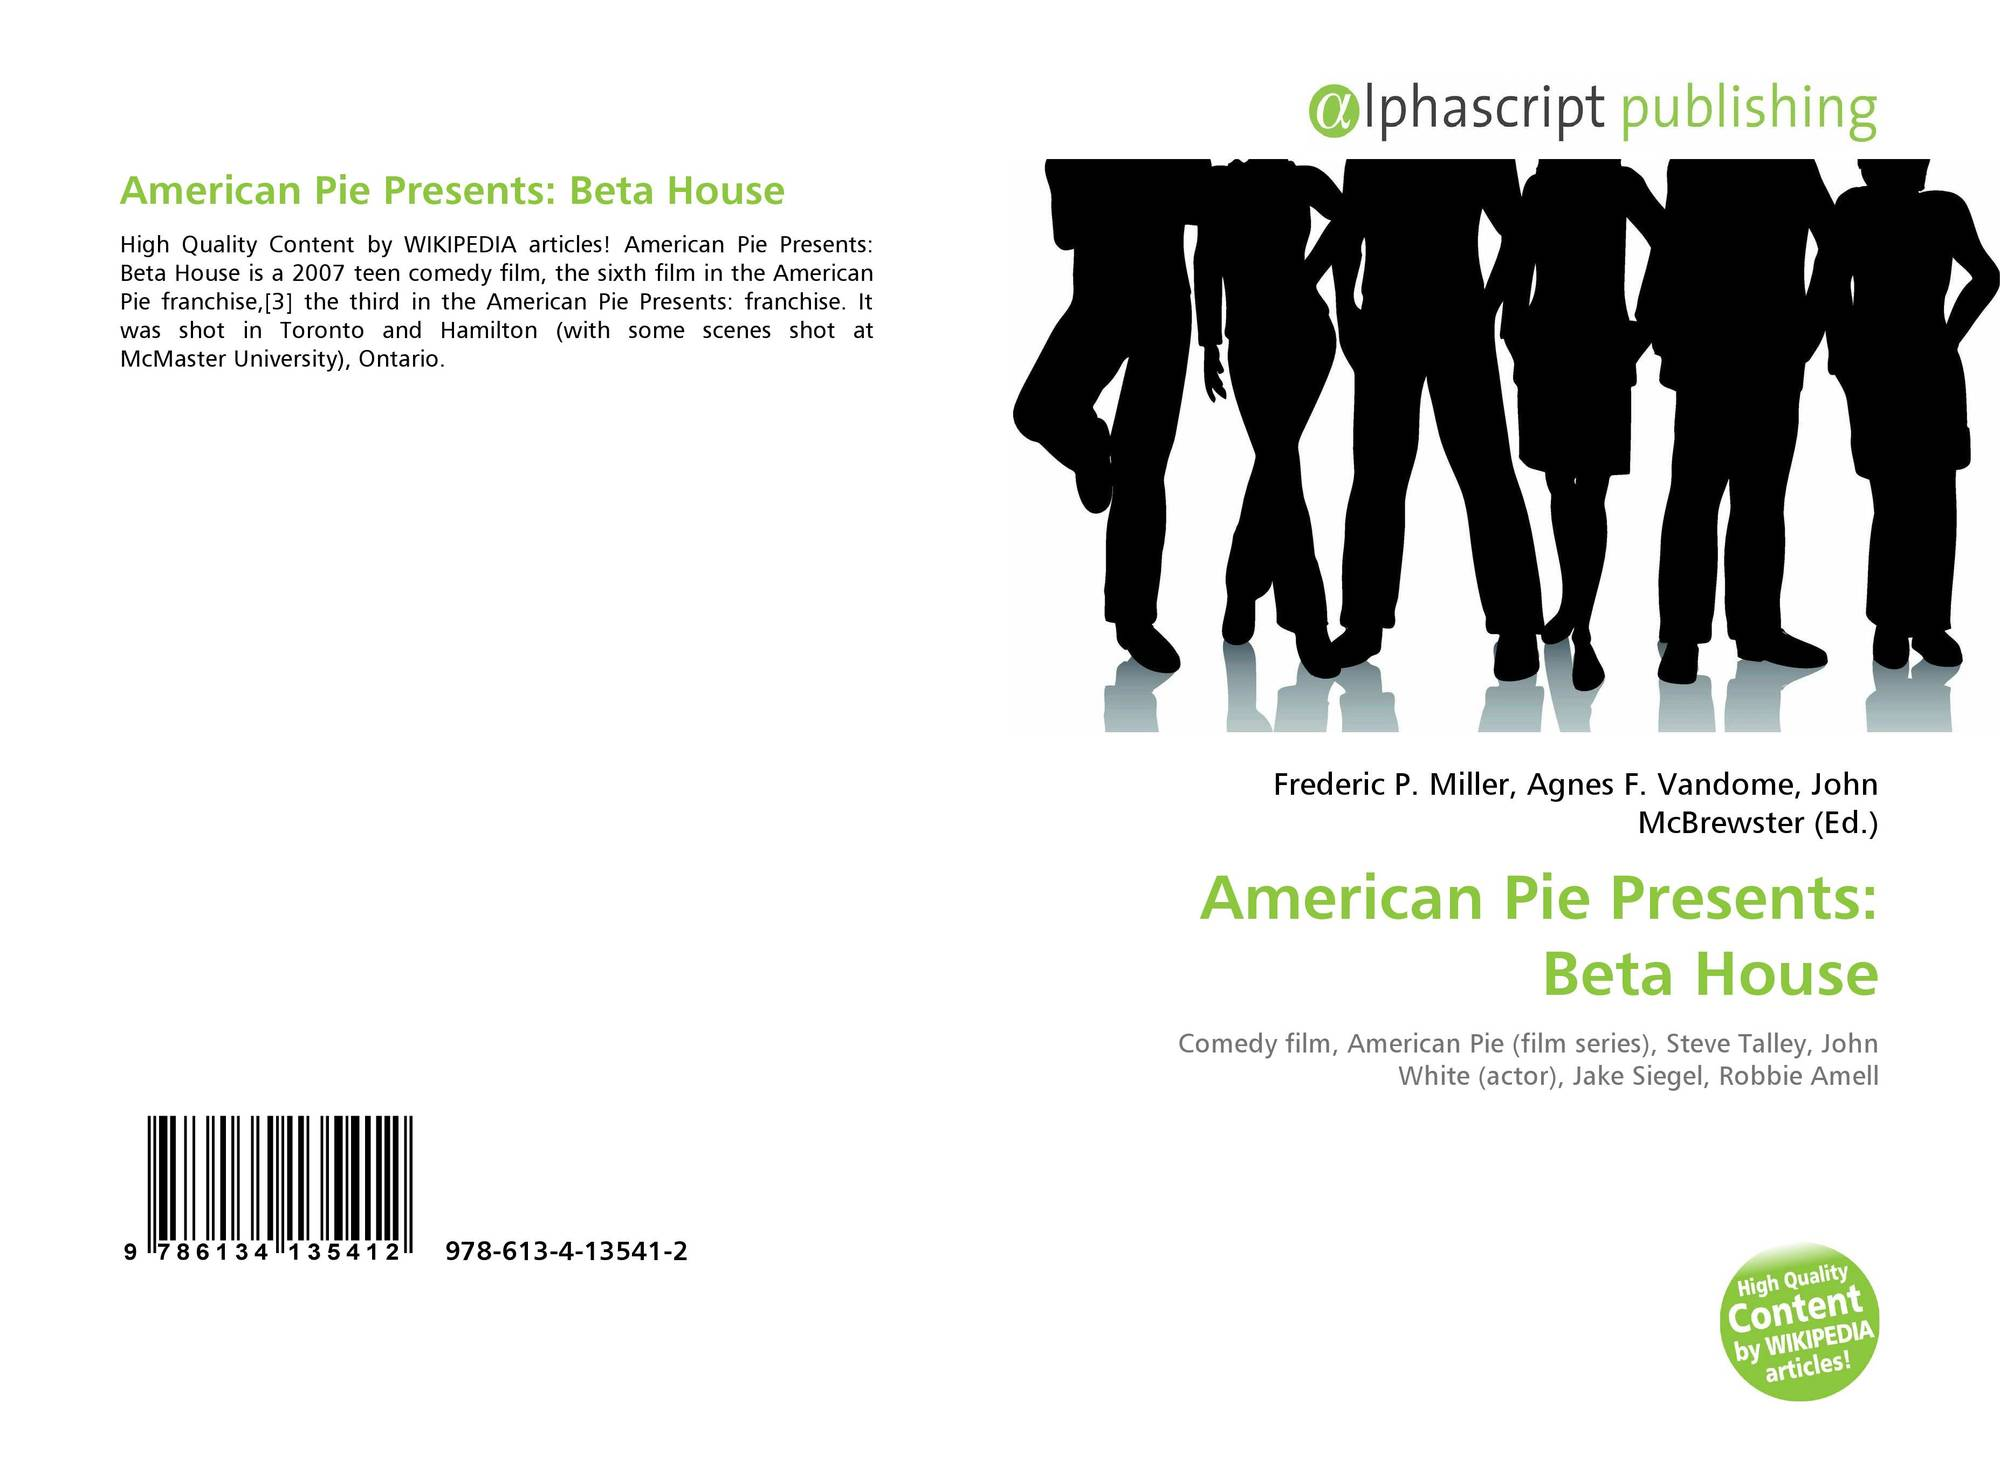 American Pie Presents Beta House Full Movie american pie presents: beta house, 978-613-4-13541-2